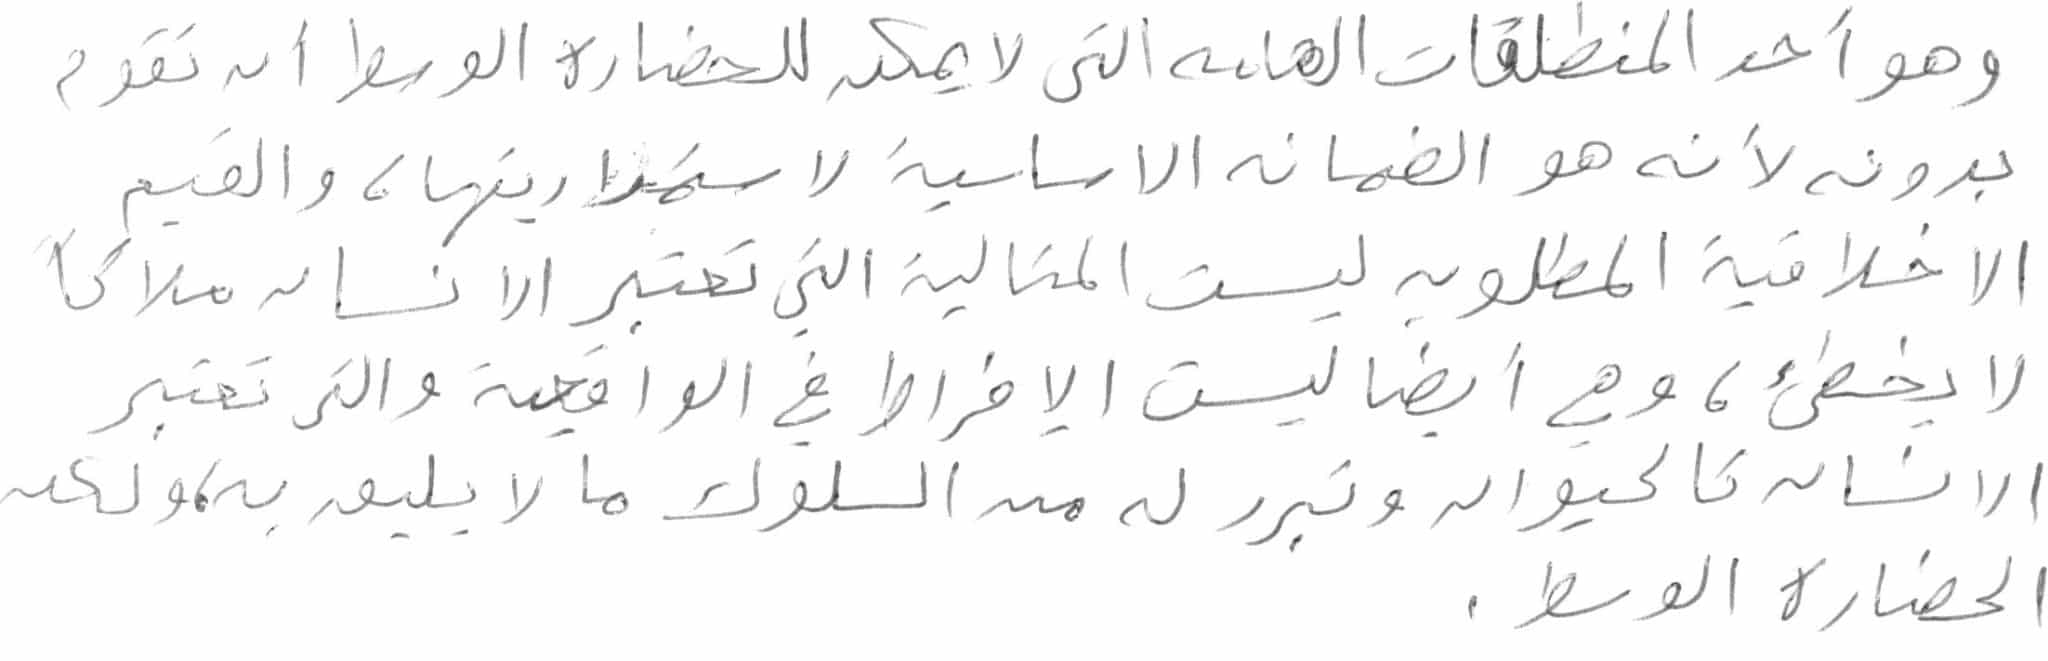 arabic-handwriting-12